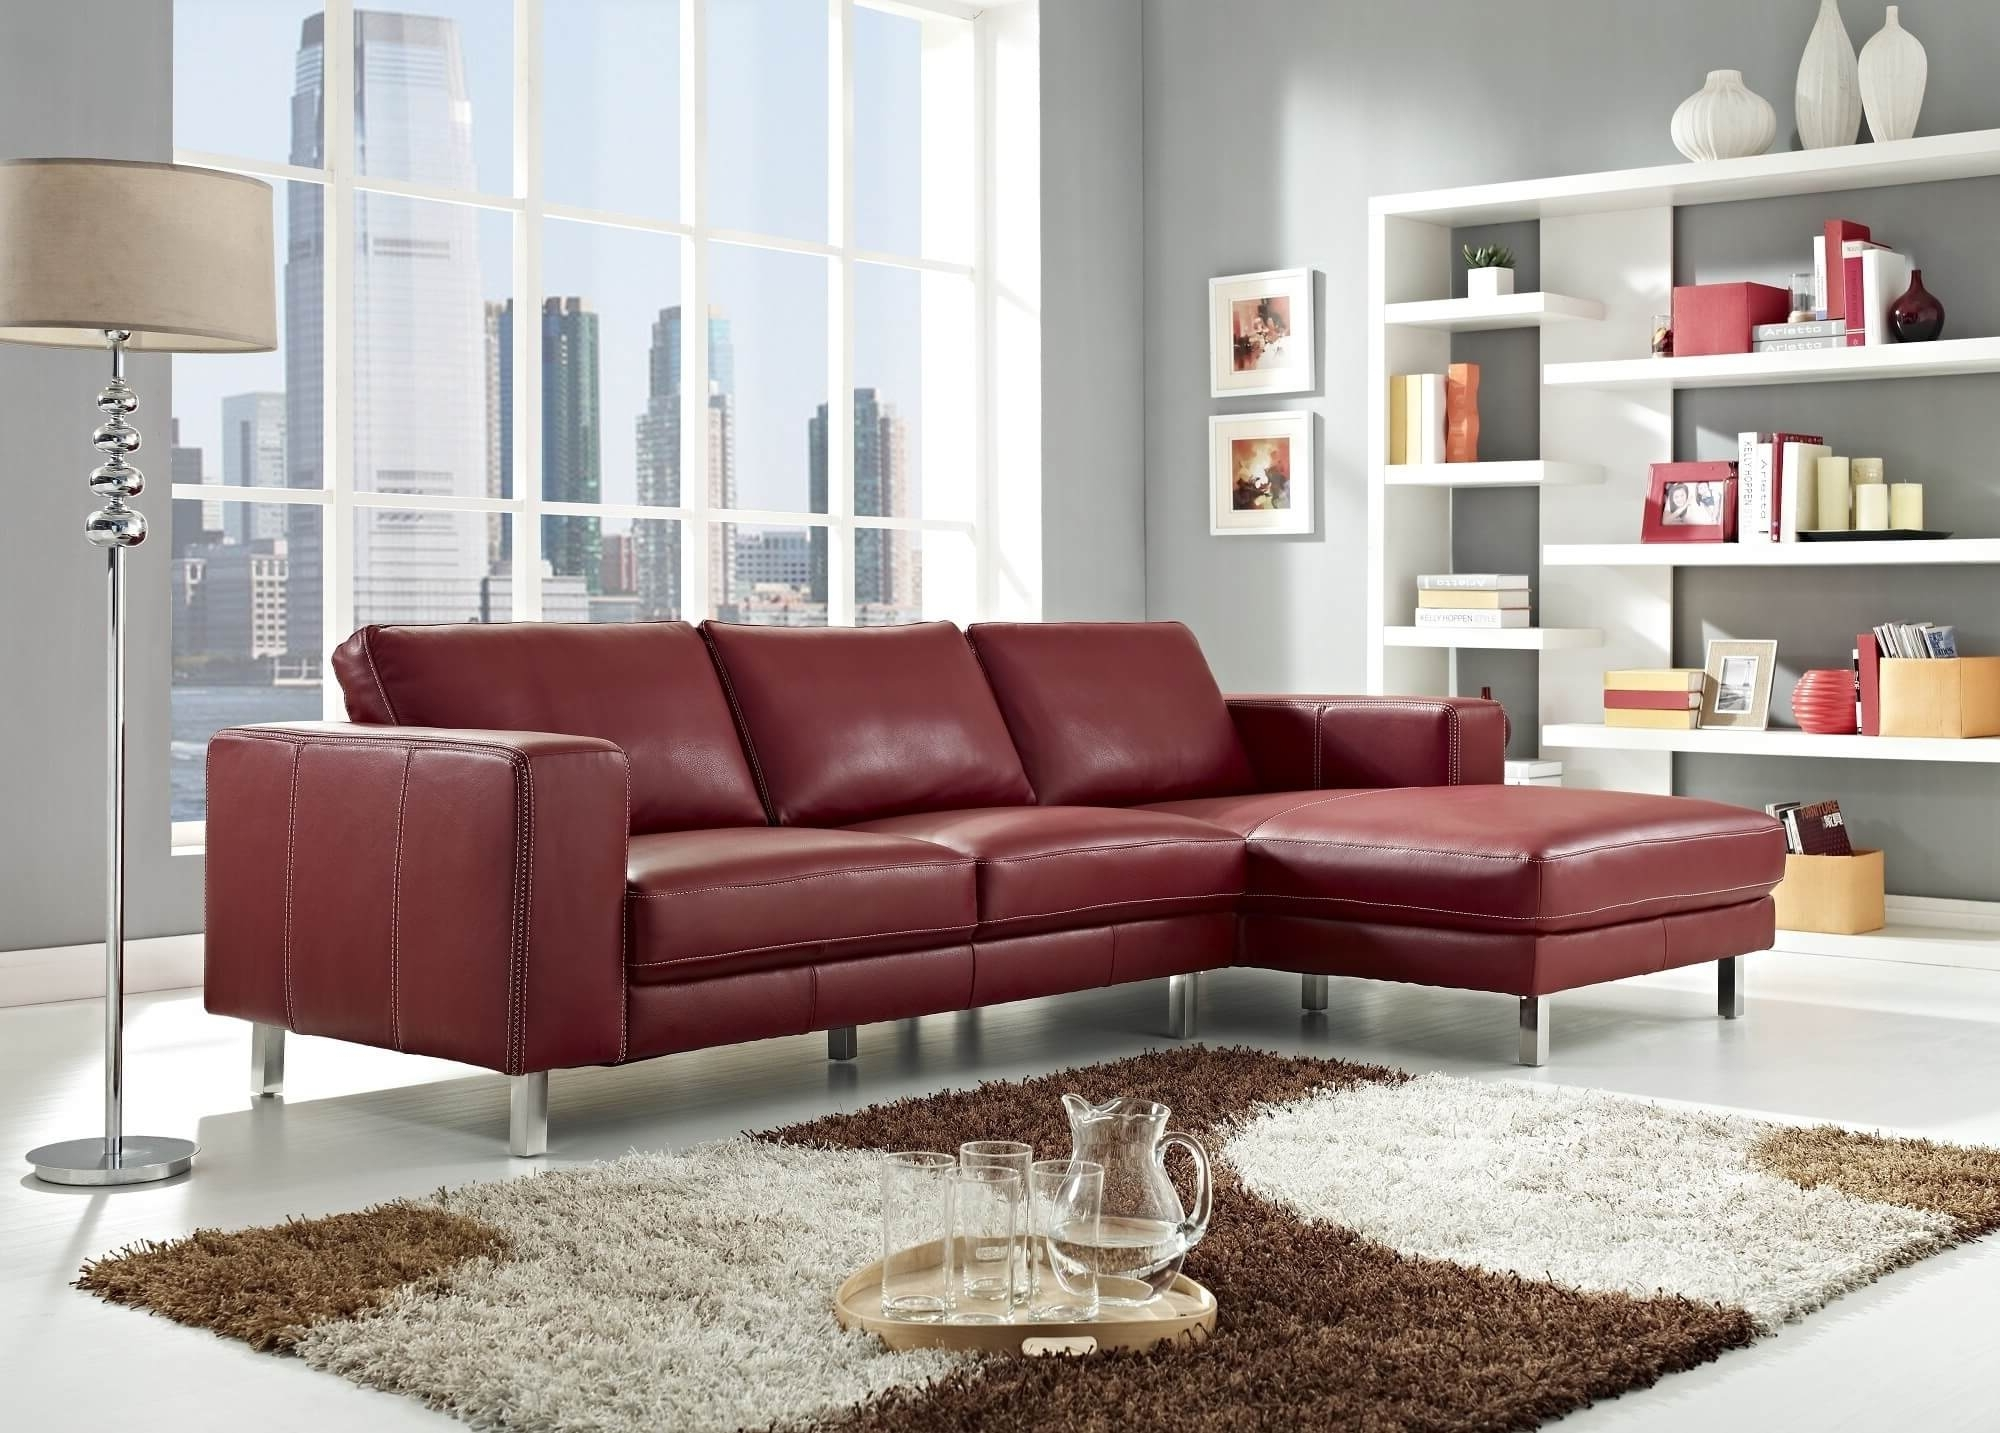 Most Current Stylish Modern Red Sectional Sofas Intended For Red Leather Couches For Living Room (View 11 of 20)